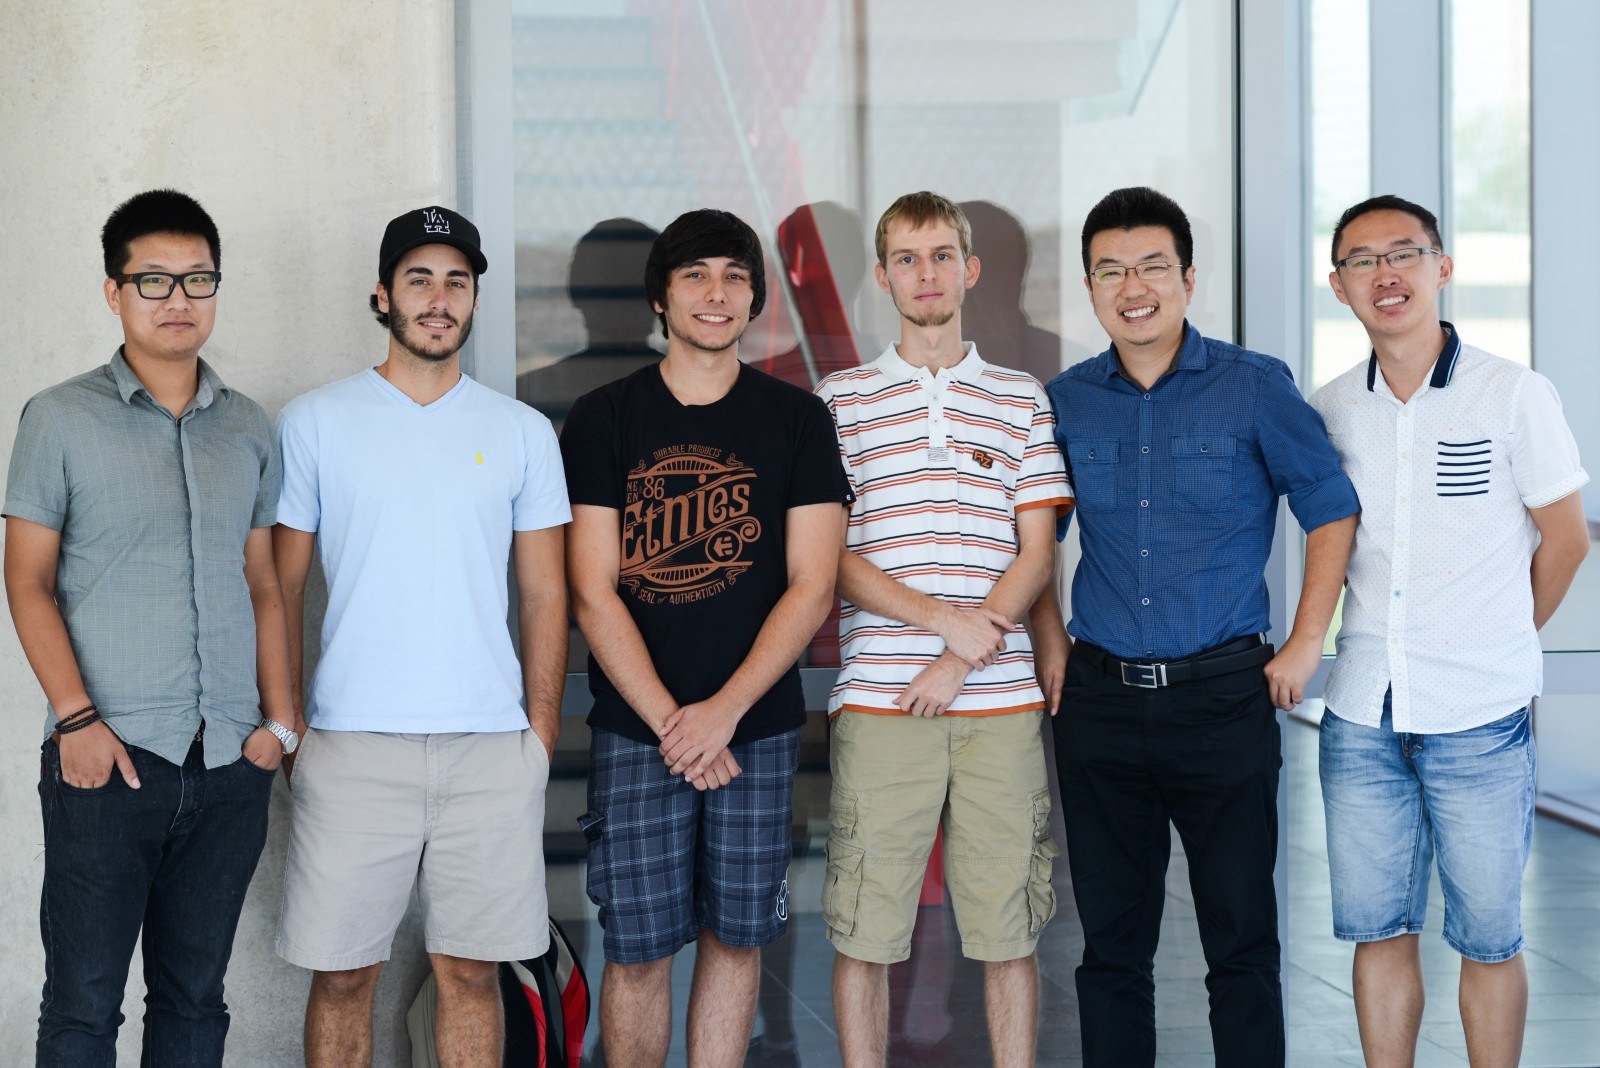 The Brock University research team exploring the use of nanobots to fight disease includes: Xiaolong Yang, left, Sean Mason, Trevor Ealaschuk, Ryan Alt, Feng Li, and Zechen Yu.